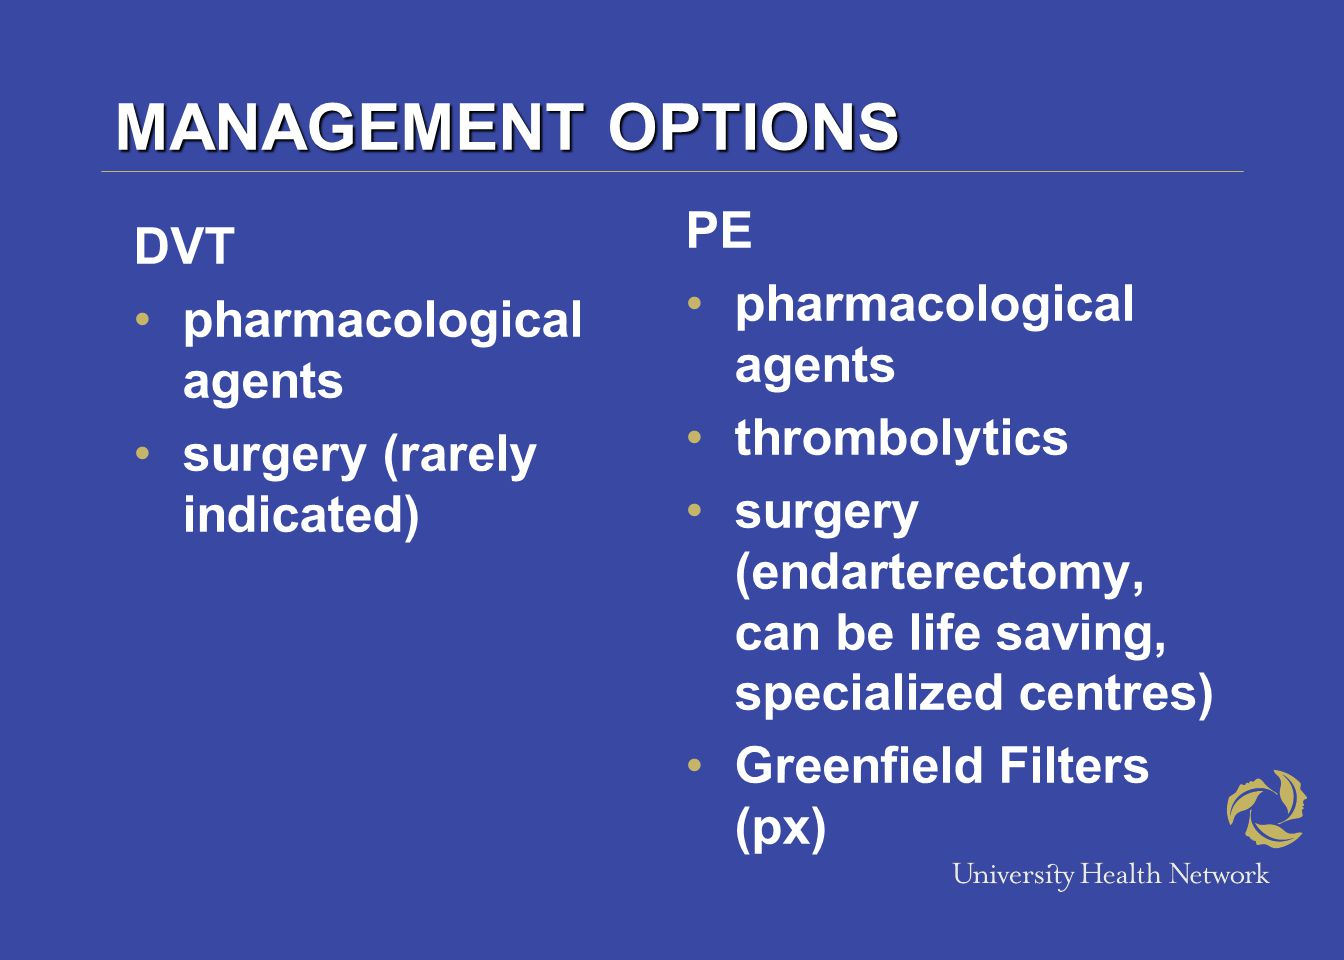 MANAGEMENT OPTIONS DVT pharmacological agents surgery (rarely indicated) PE pharmacological agents thrombolytics surgery (endarterectomy, can be life saving, specialized centres) Greenfield Filters (px)